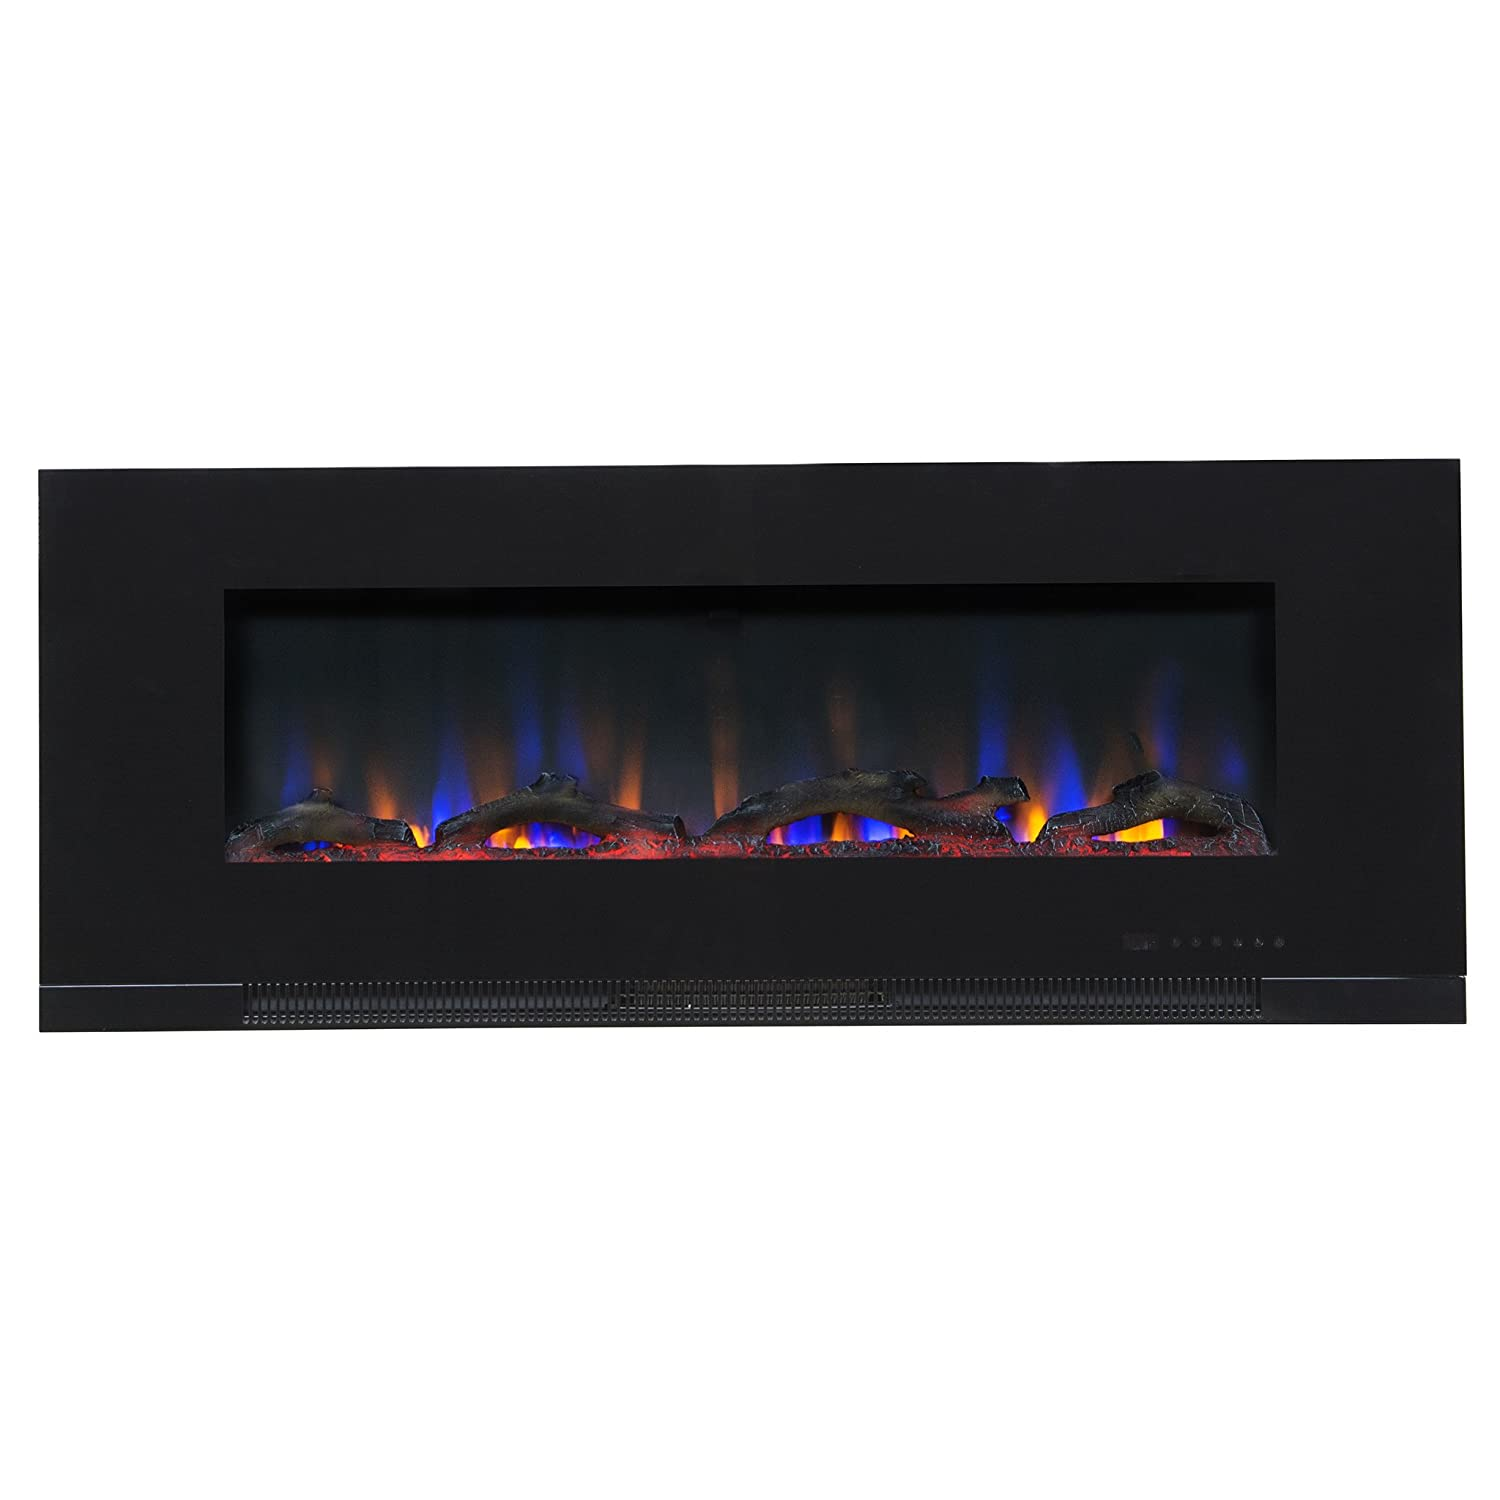 Pleasing Touchstone Valueline 50 10 Color In Wall Recessed Electric Fireplace 50 Inch Wide Logset Crystal 1200W Heat Black Home Interior And Landscaping Staixmapetitesourisinfo